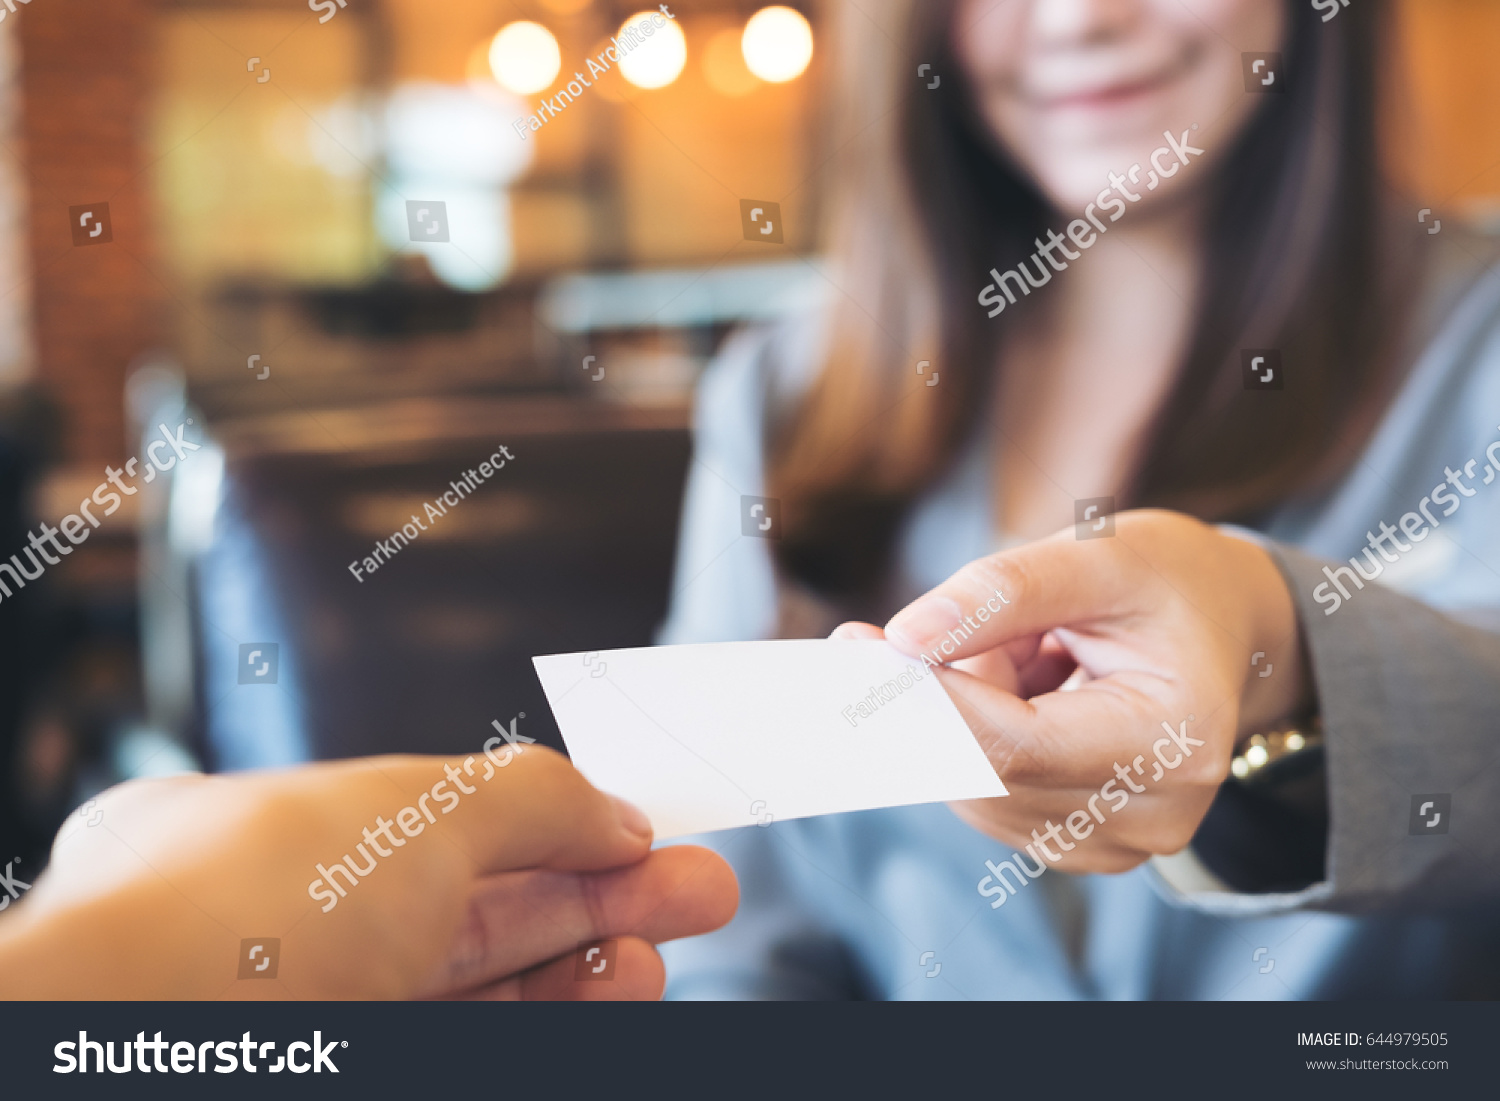 Business Woman Exchange Business Card Business Stock Photo ...